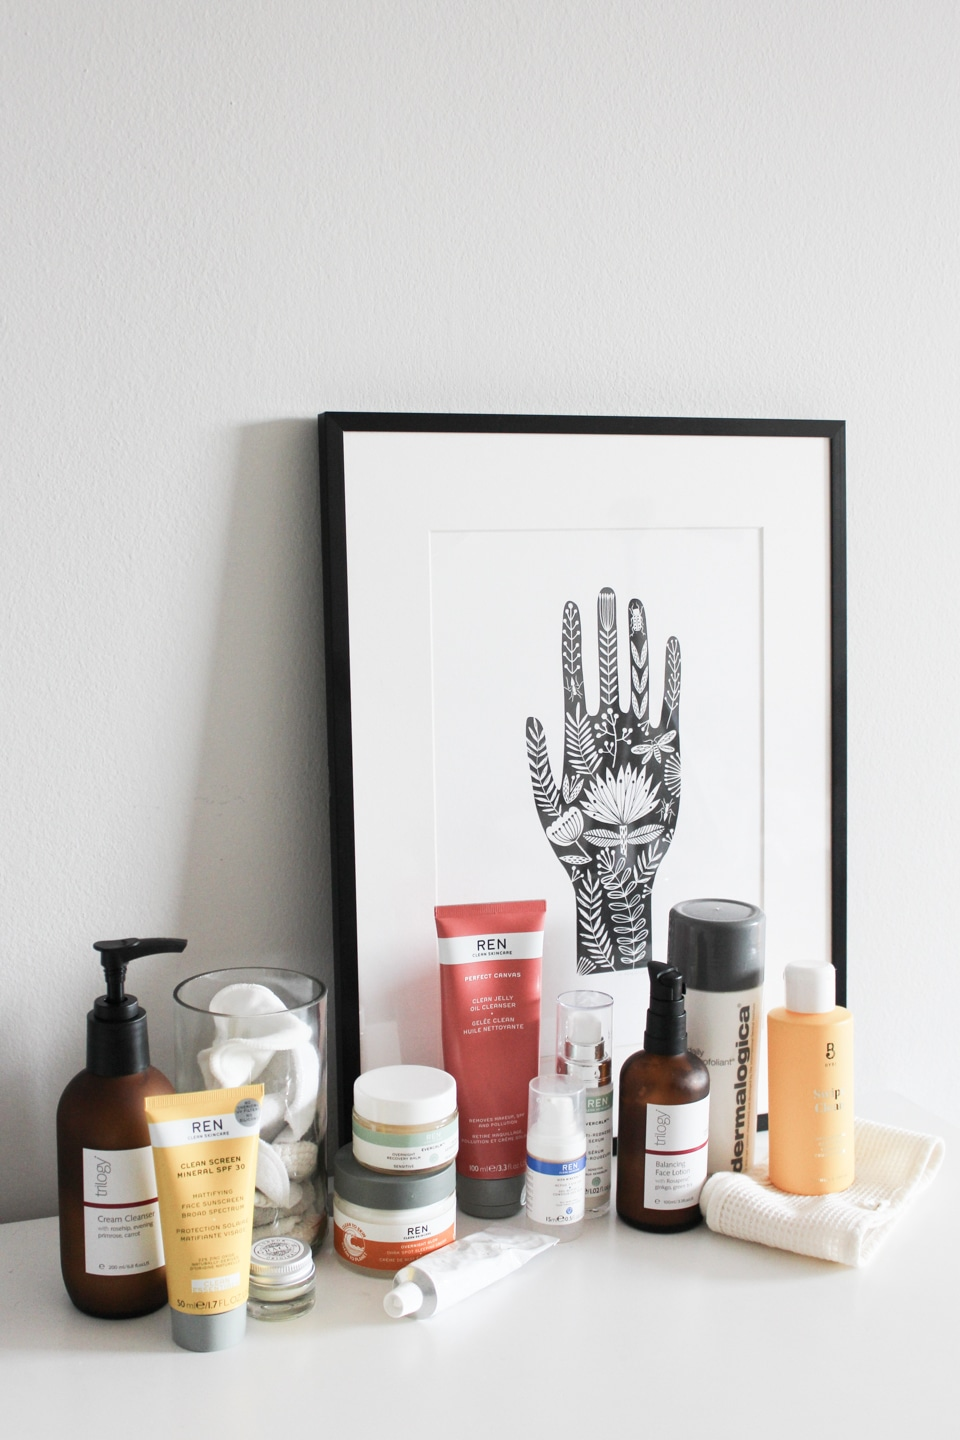 Skincare products next to a framed print